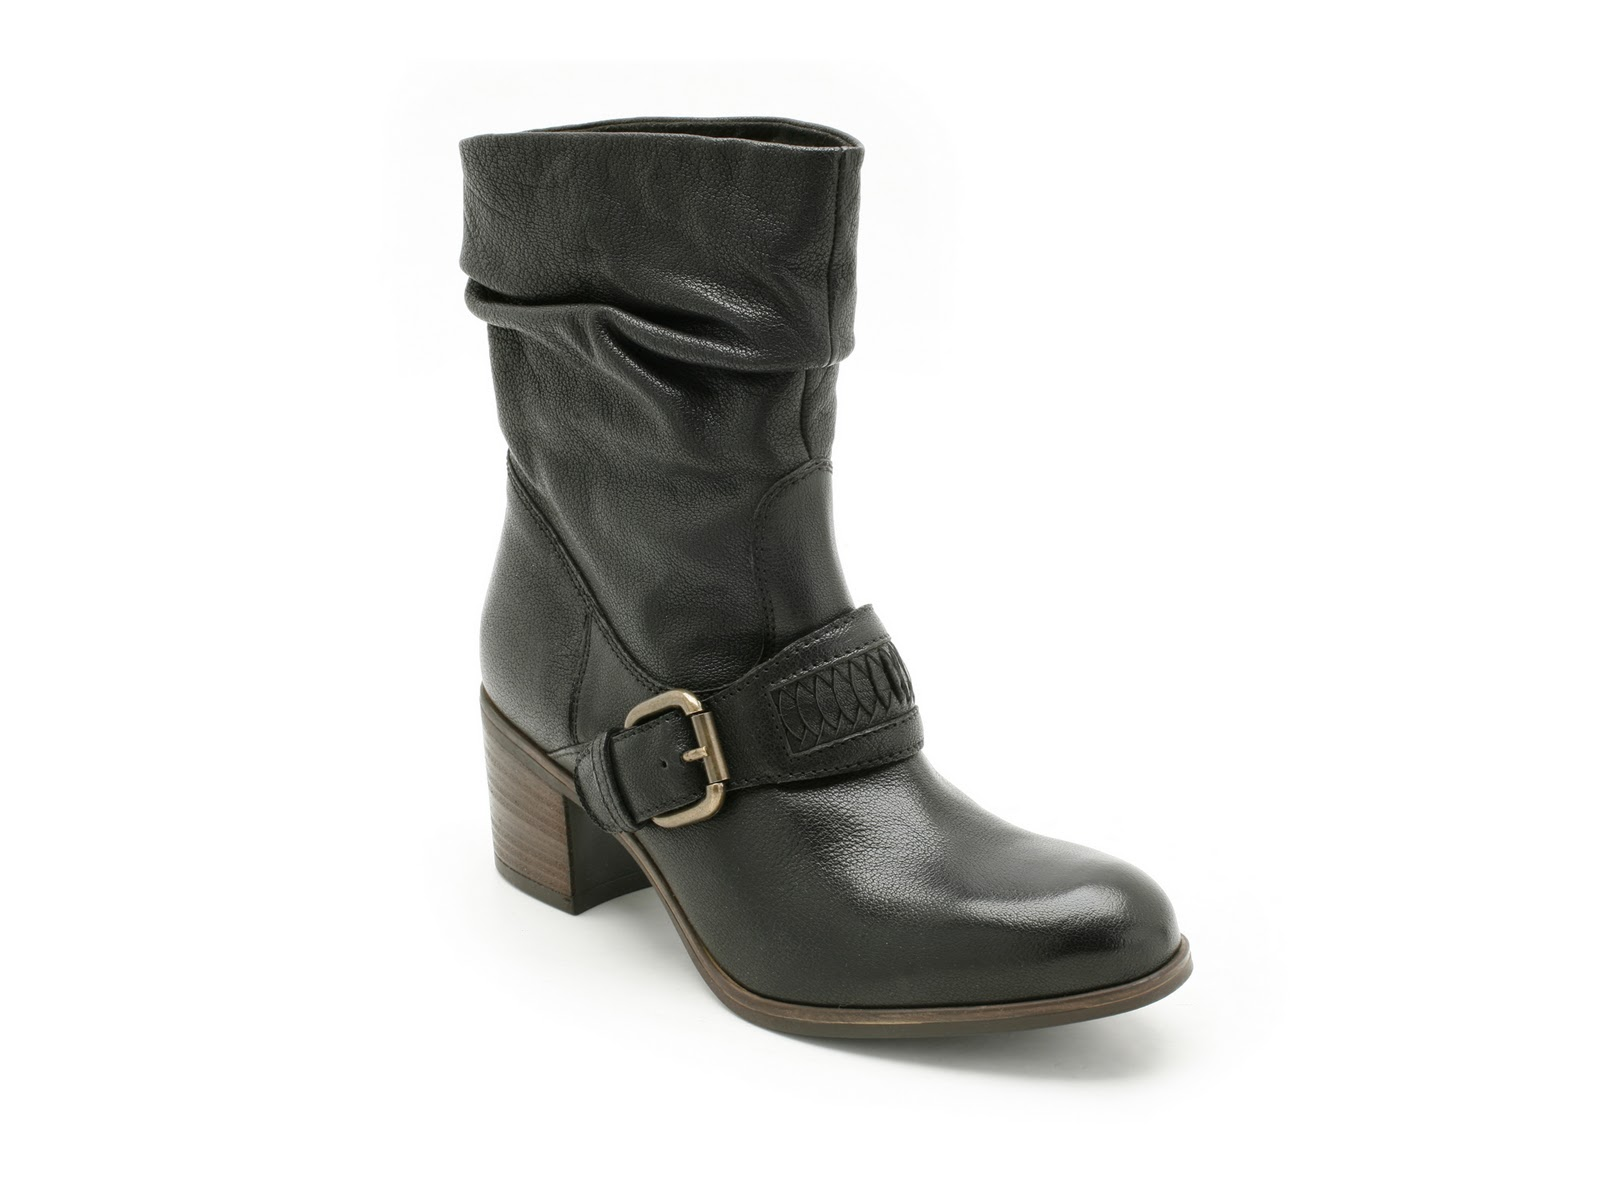 Clarks Shoes Personal Injur